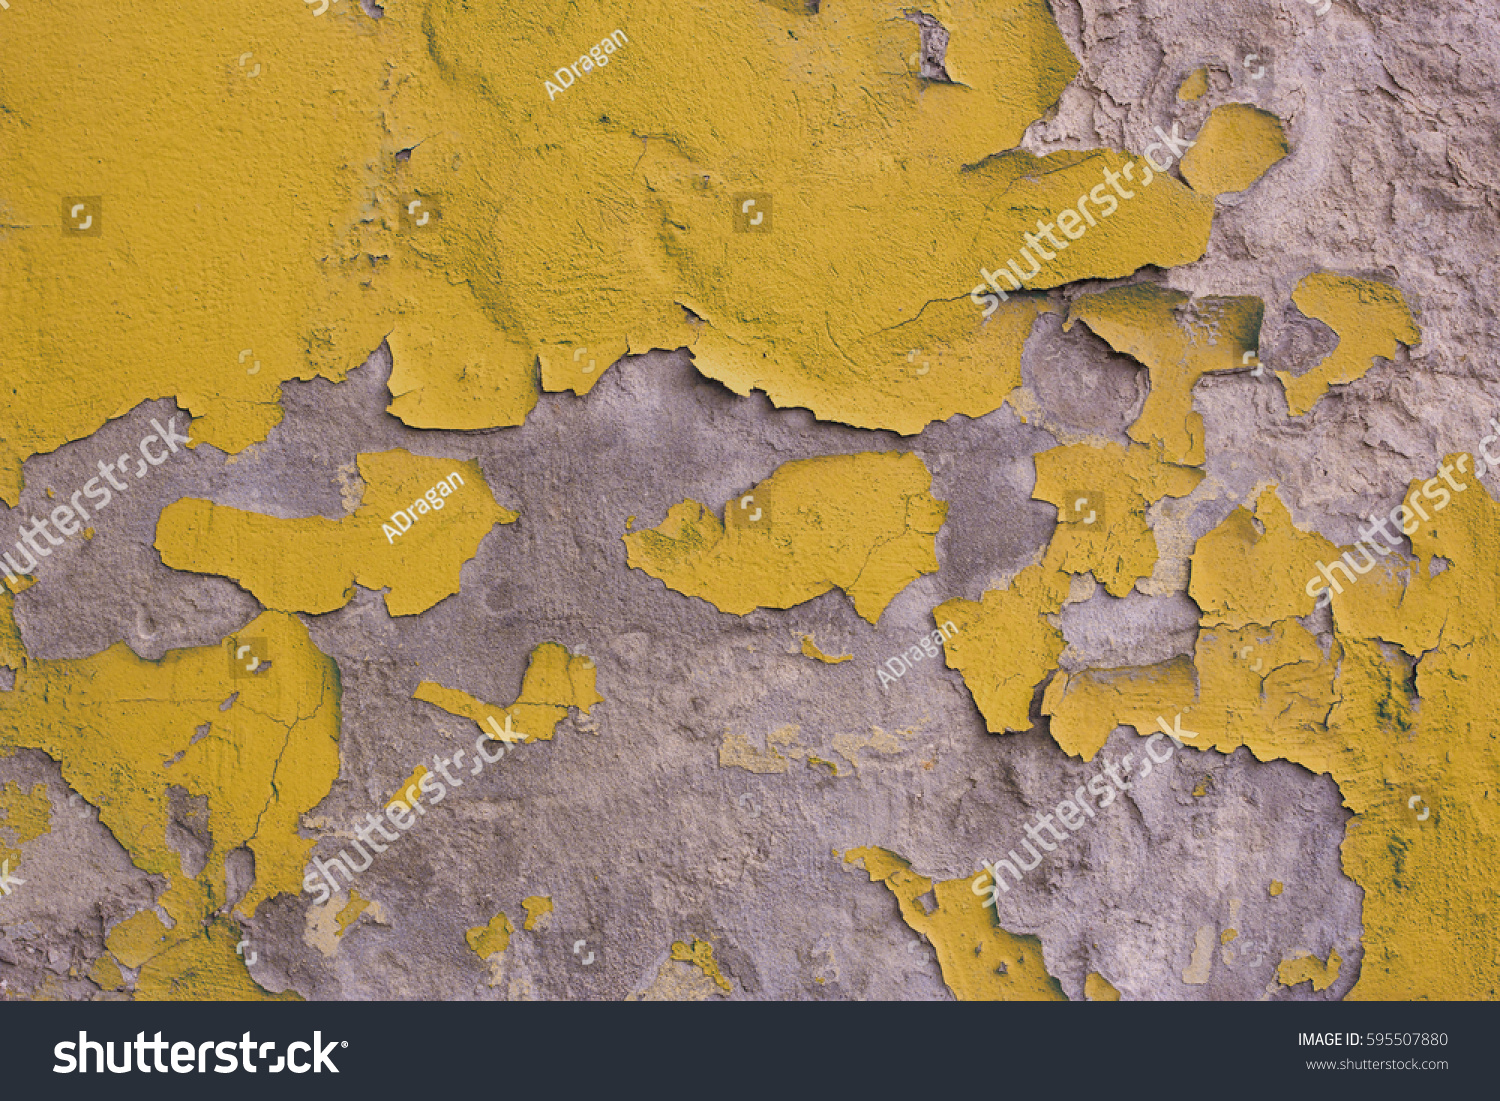 Old Wall Cracked Yellow Paint Plaster Stock Photo 595507880 ...